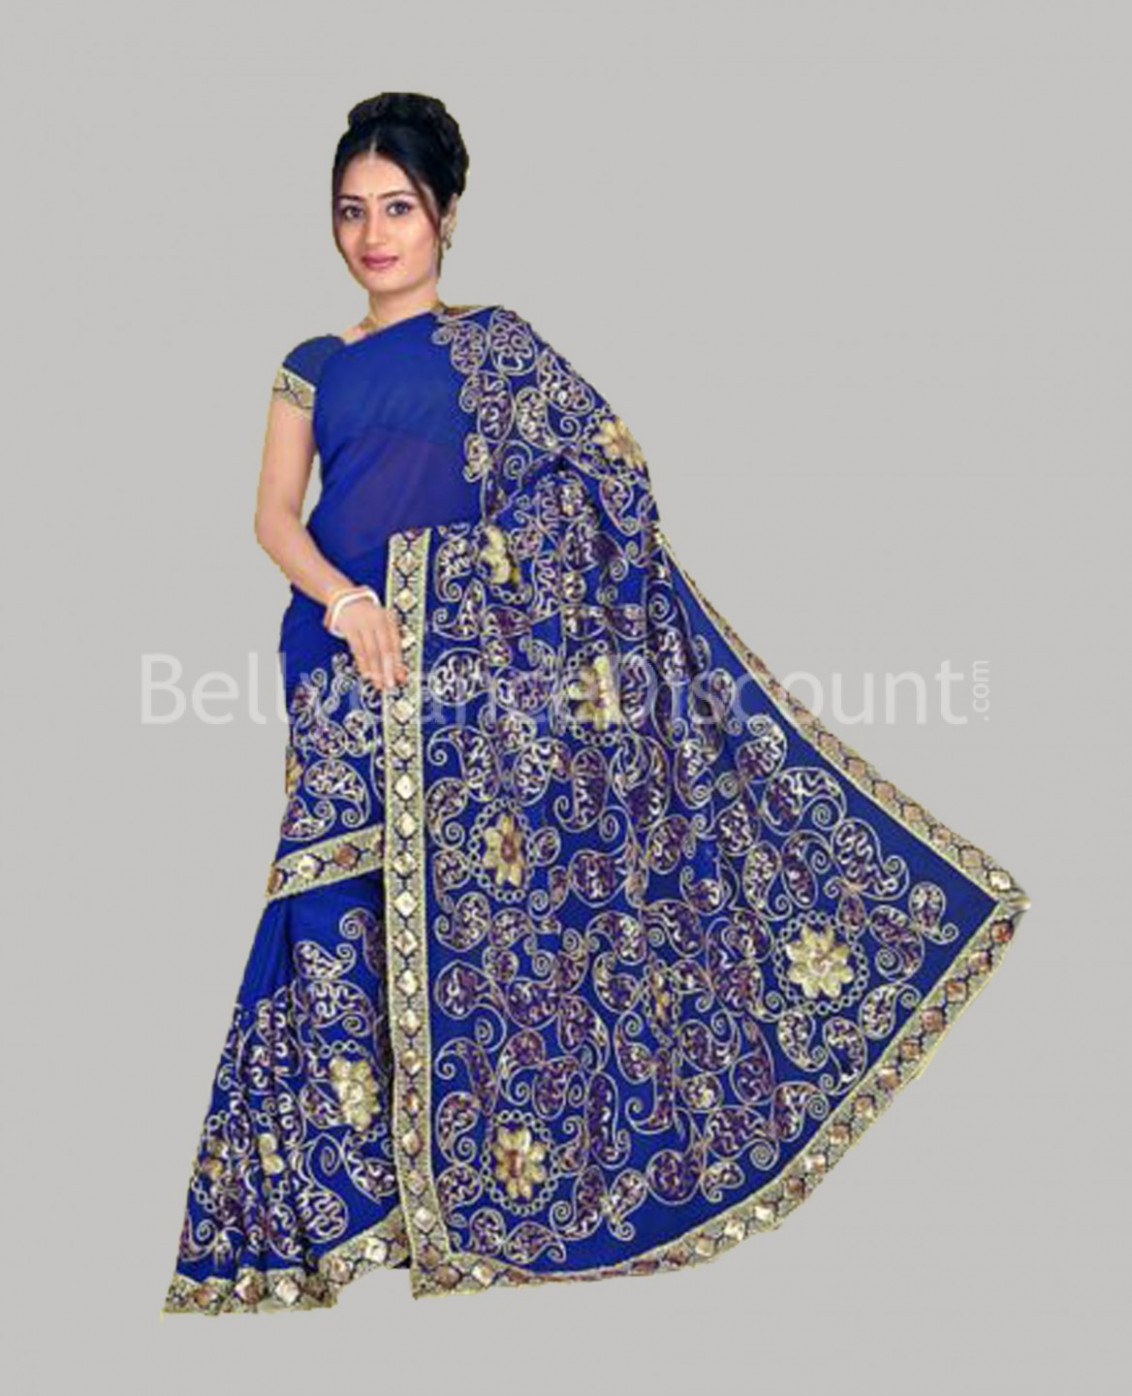 Haute-couture Bollywood dance Saree dark blue ...